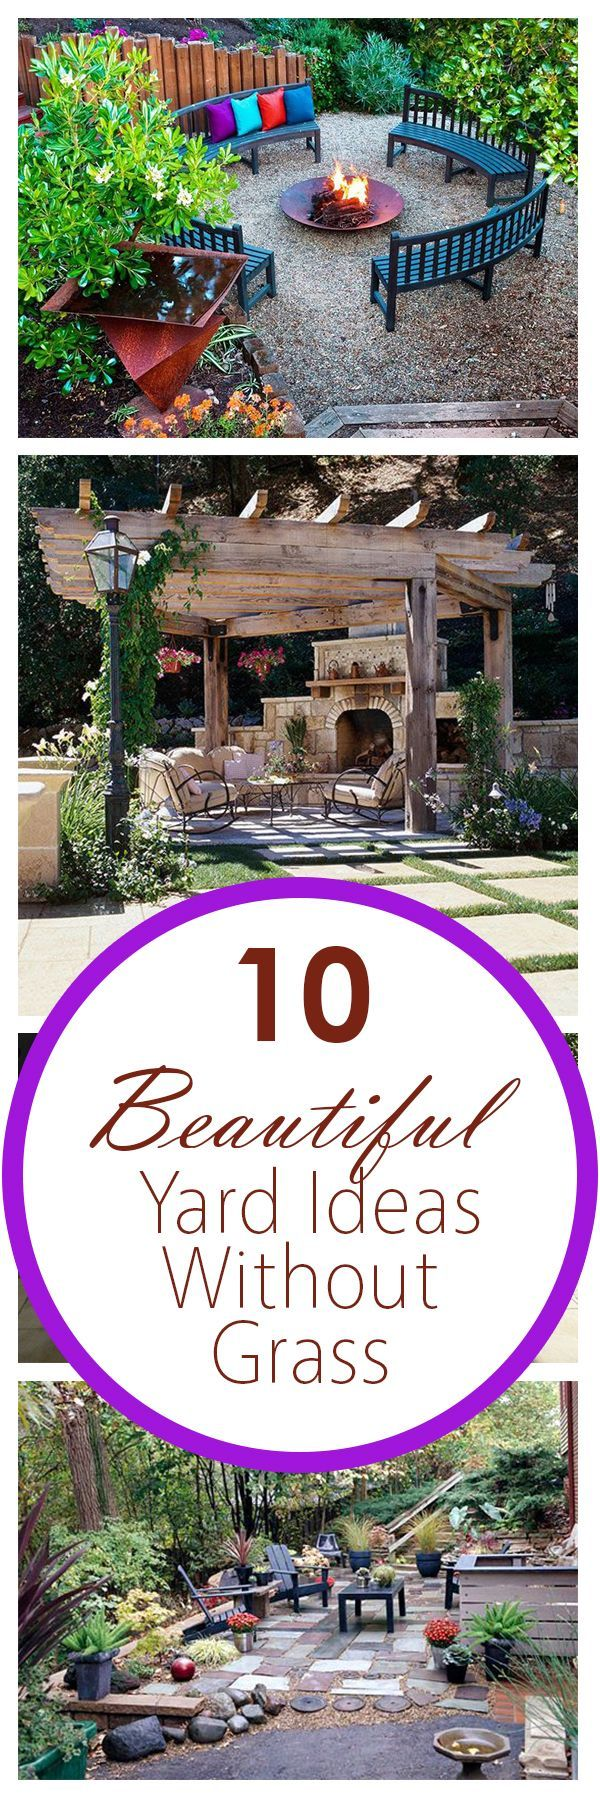 Outdoor living ideas by quiet earth landscapes - 10 Beautiful Yard Ideas Without Grass